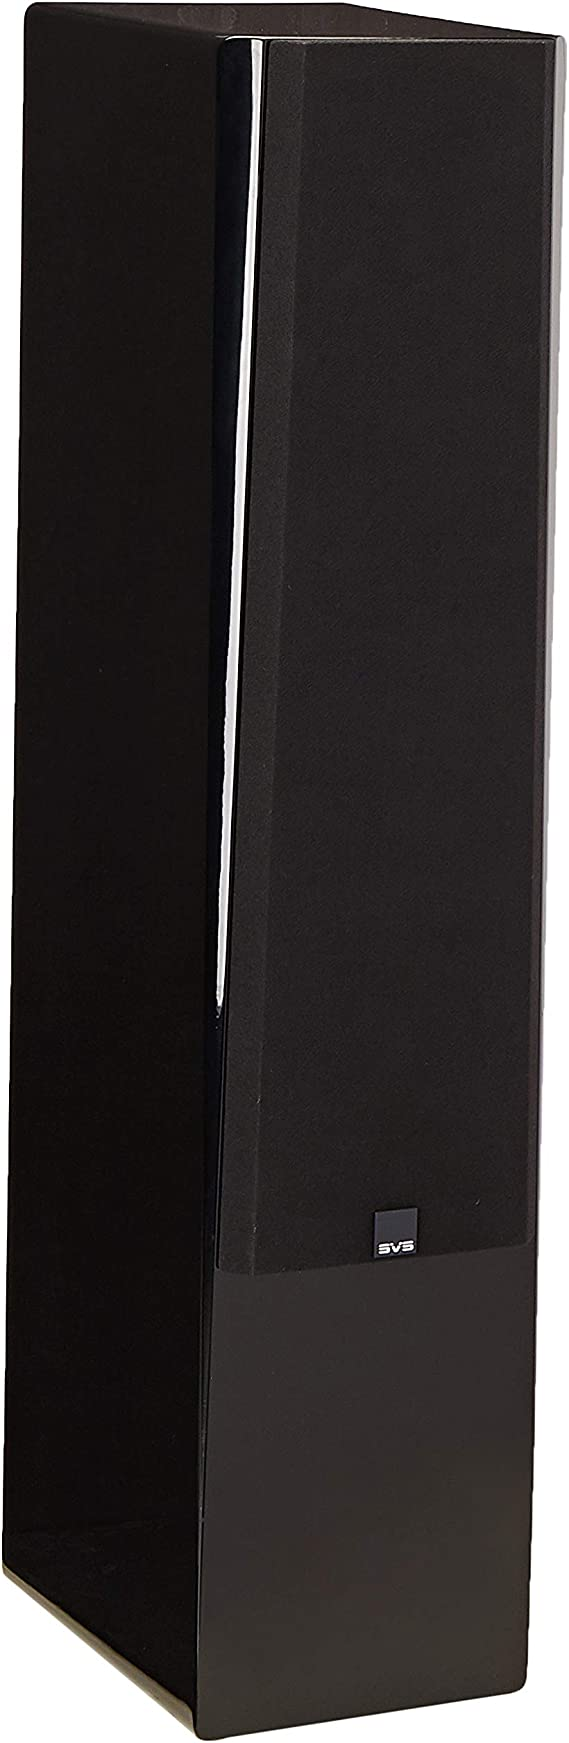 SVS Prime Tower Speaker - (Each) Black Ash